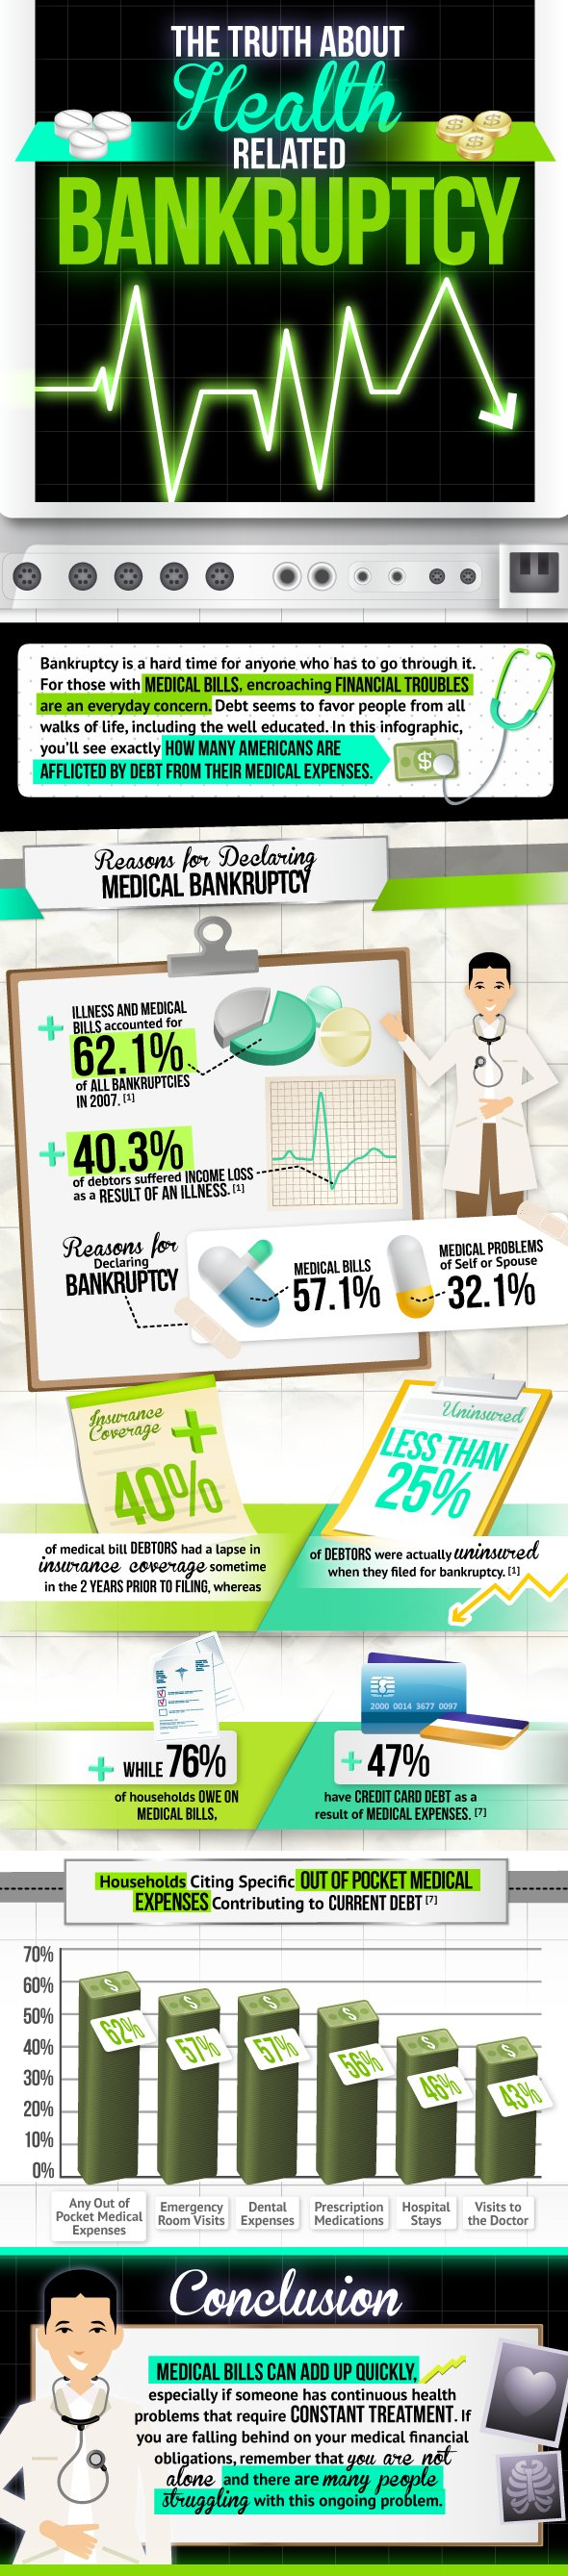 Medical Bankruptcy Infographic